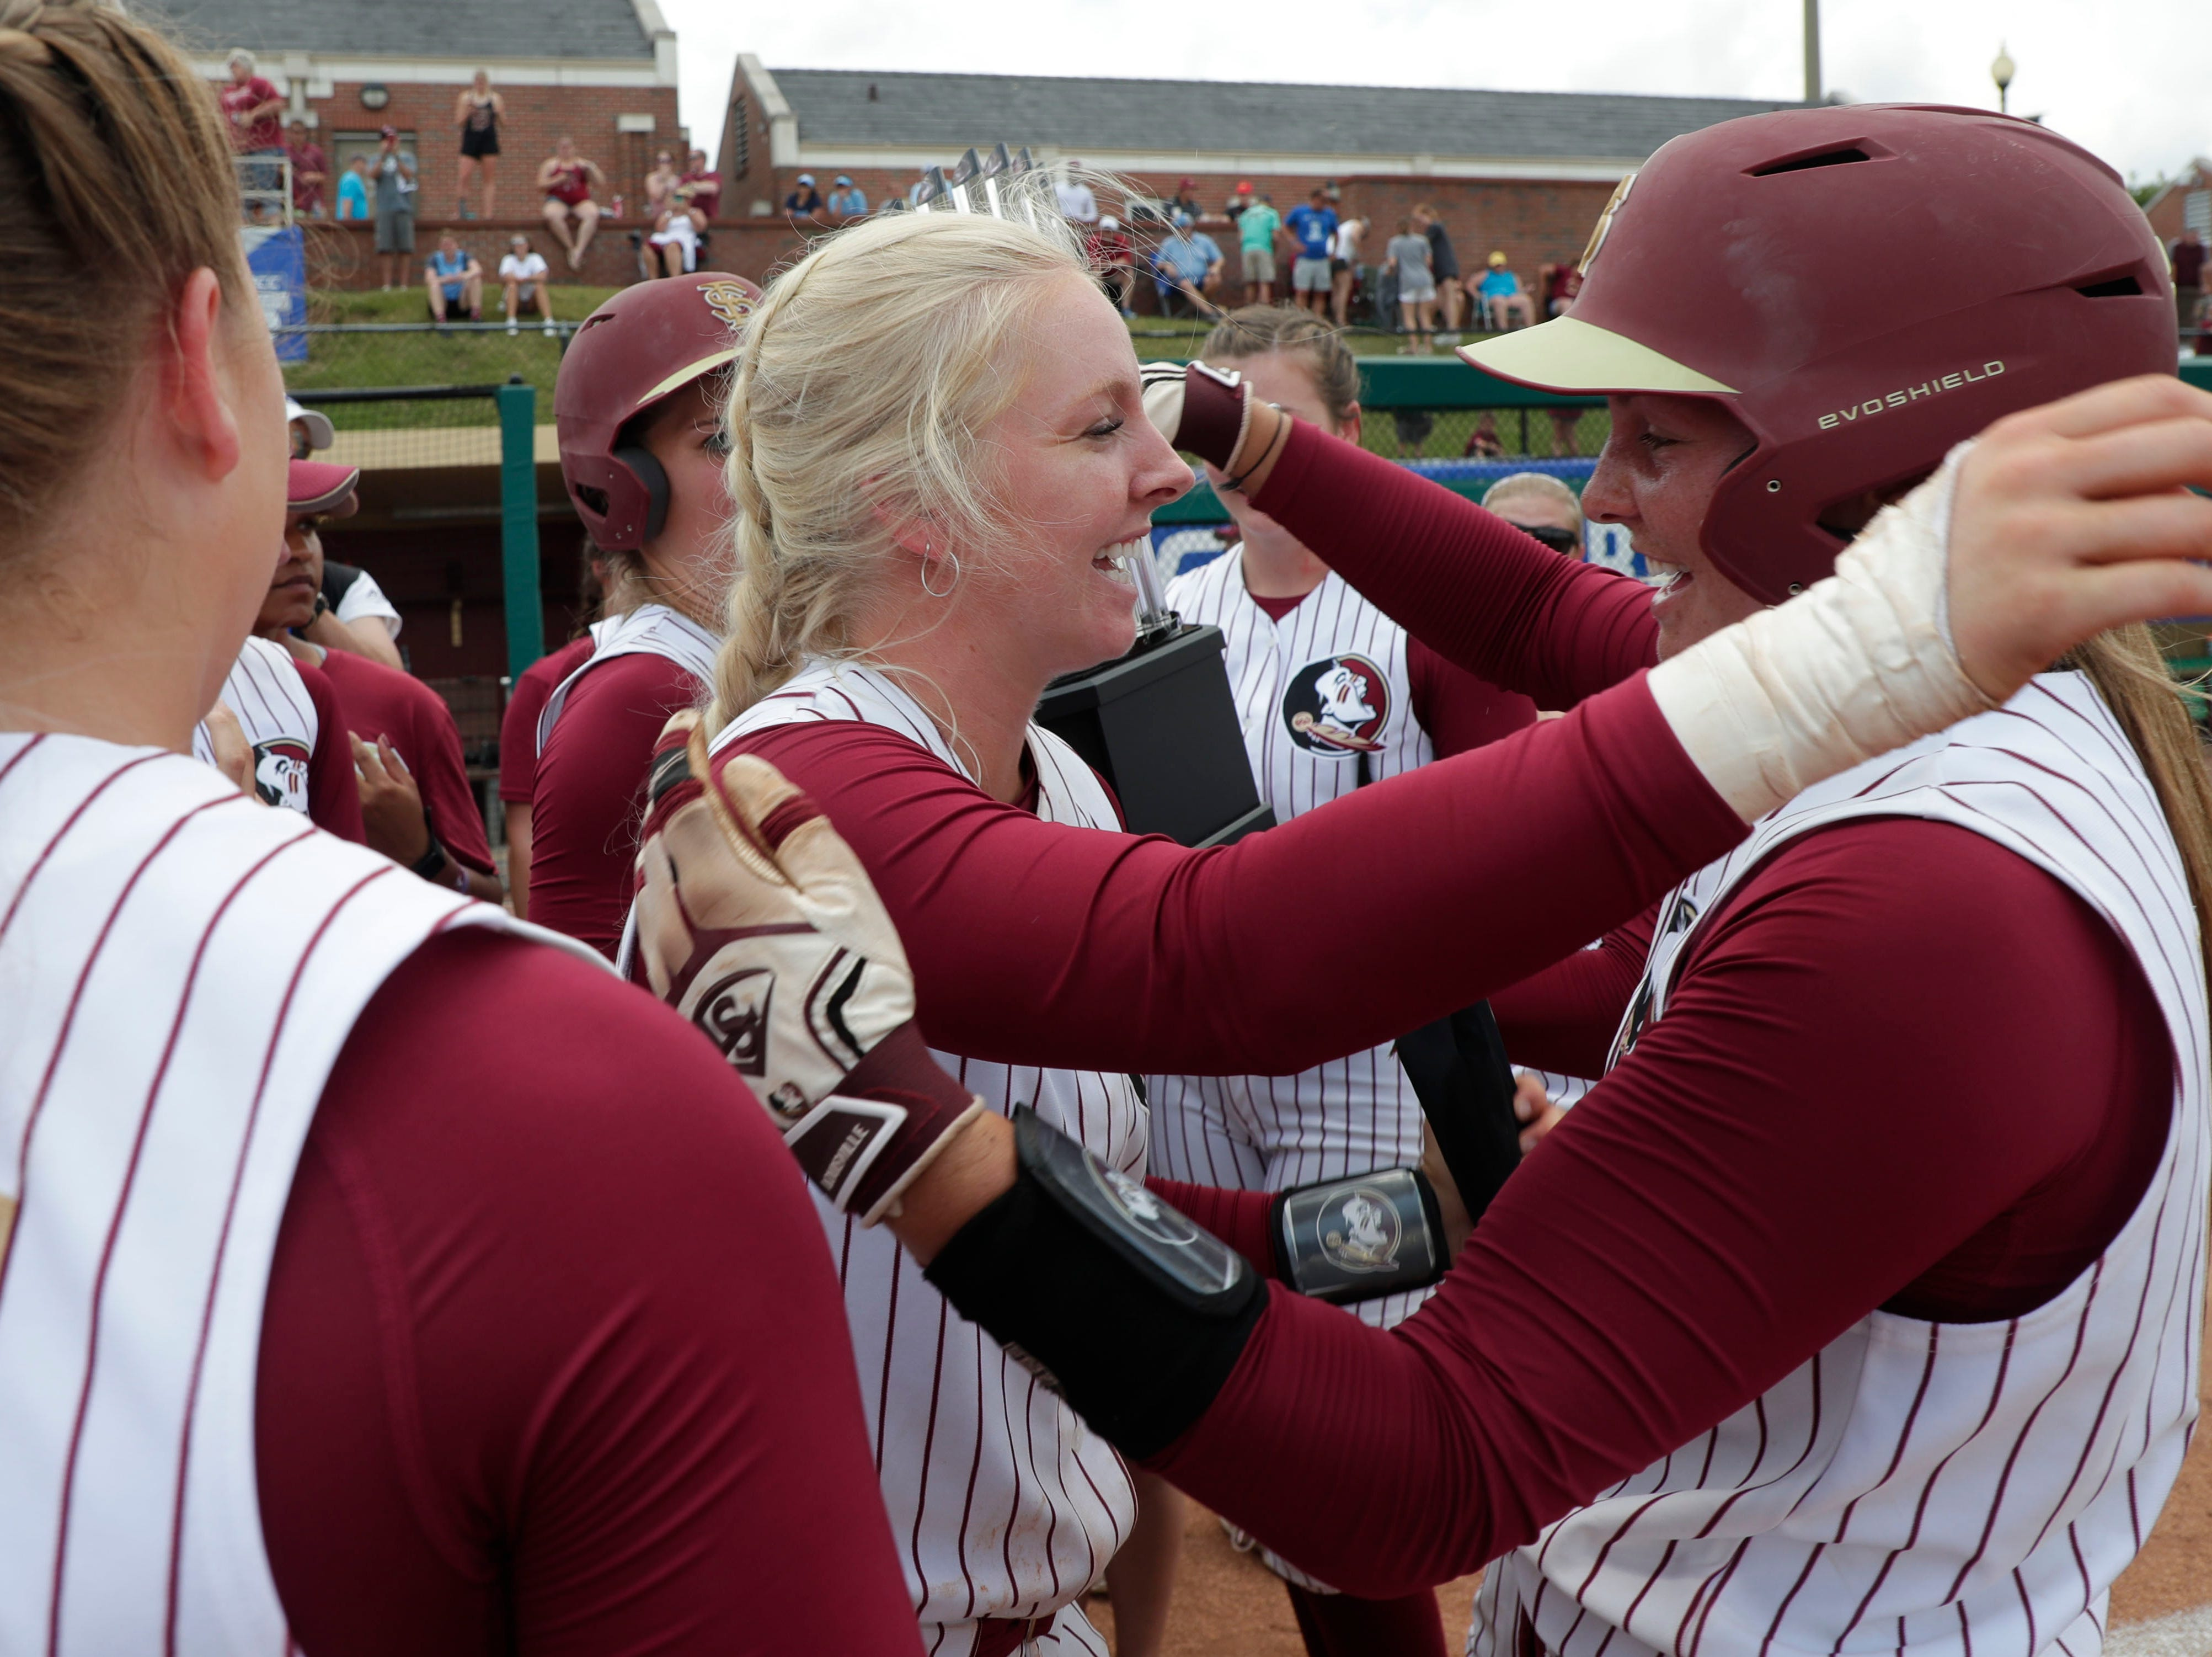 Florida State Seminoles utility player Sydney Sherrill (24) and Florida State Seminoles infielder Cali Harrod (10) hug each other during the excitement. The Florida State Seminoles celebrate their victory over the UNC Tar Heels for the ACC Softball Championship title Saturday, May 11, 2019.